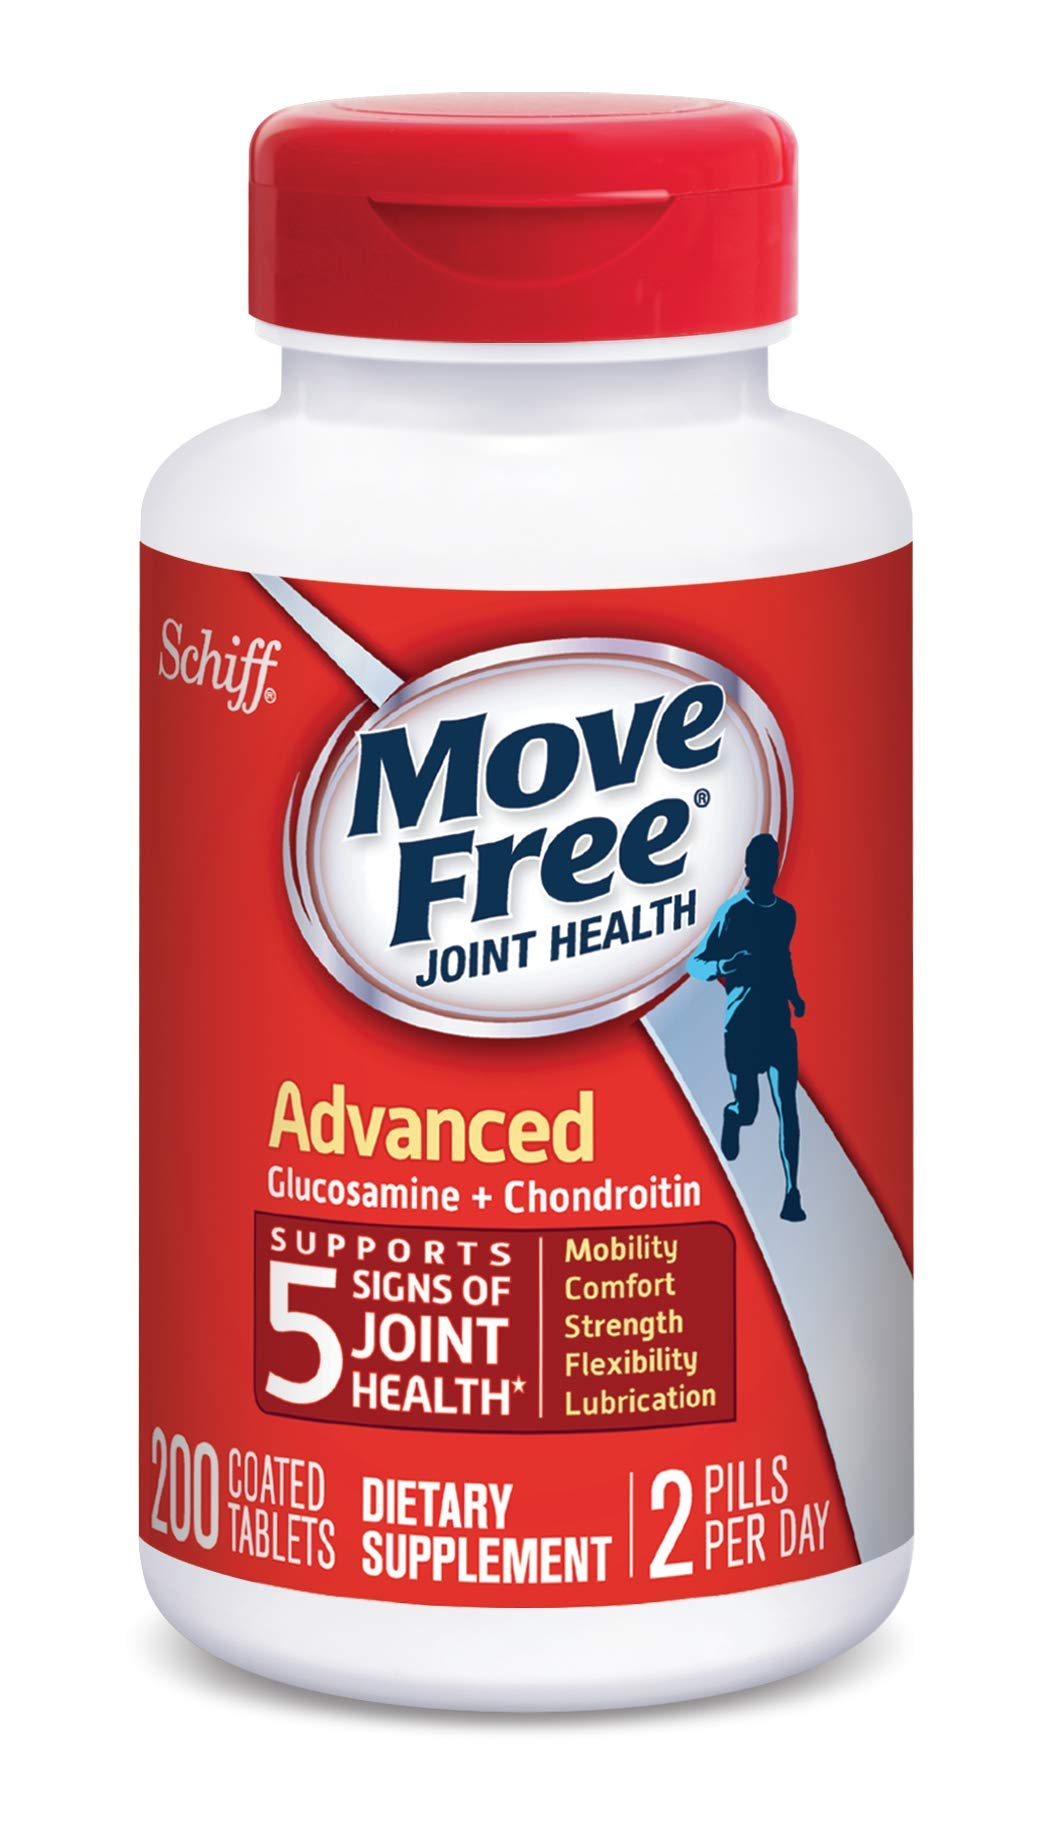 Glucosamine & Chondroitin Advanced Joint Health Supplement Tablets, Move Free (200 count in a bottle), Supports Mobility, Flexibility, Strength, Lubrication and Comfort by Move Free (Image #3)